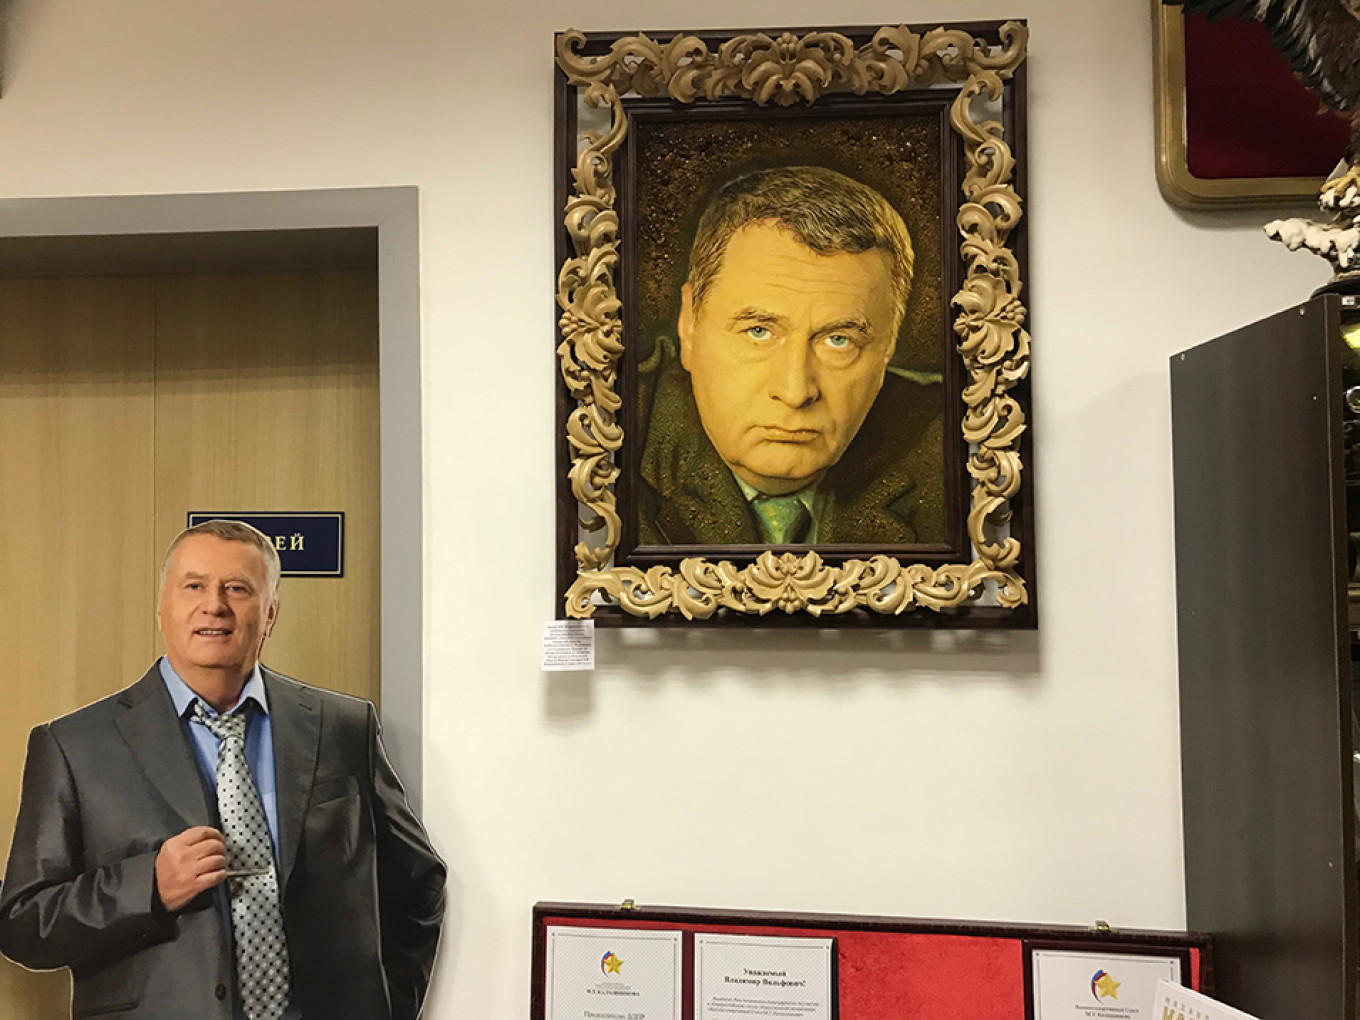 A cardboard cutout and portrait of Zhirinovsky at his campaign headquarters				 				Evan Gershkovich